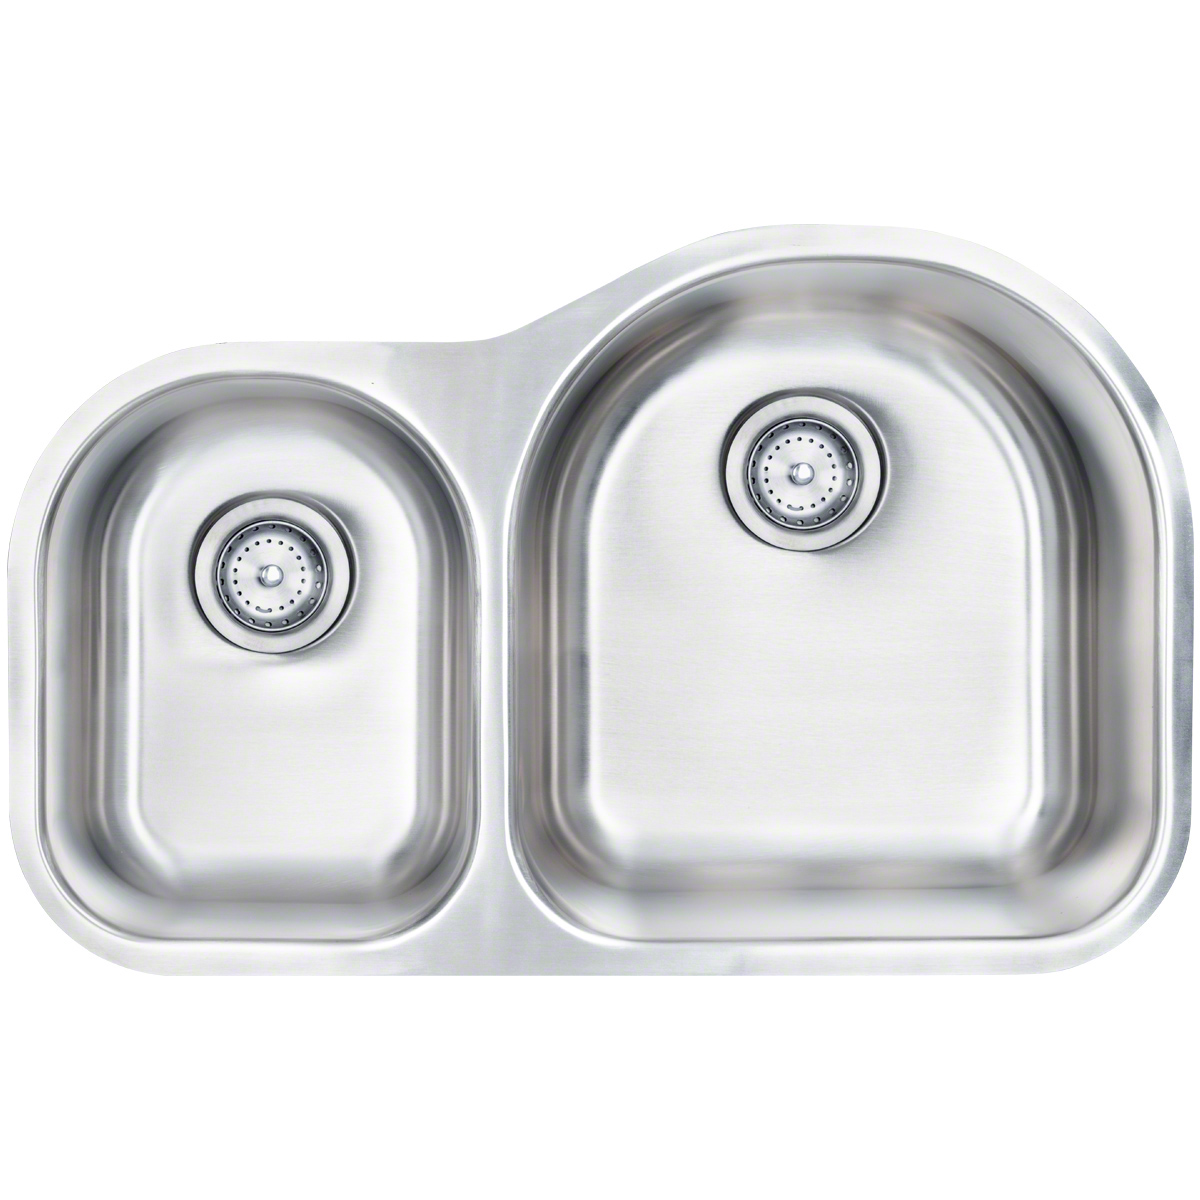 Franke Granite Kitchen Sinks Kitchen Stainless Steel Sinks Discount Kitchen Sinks Sincere